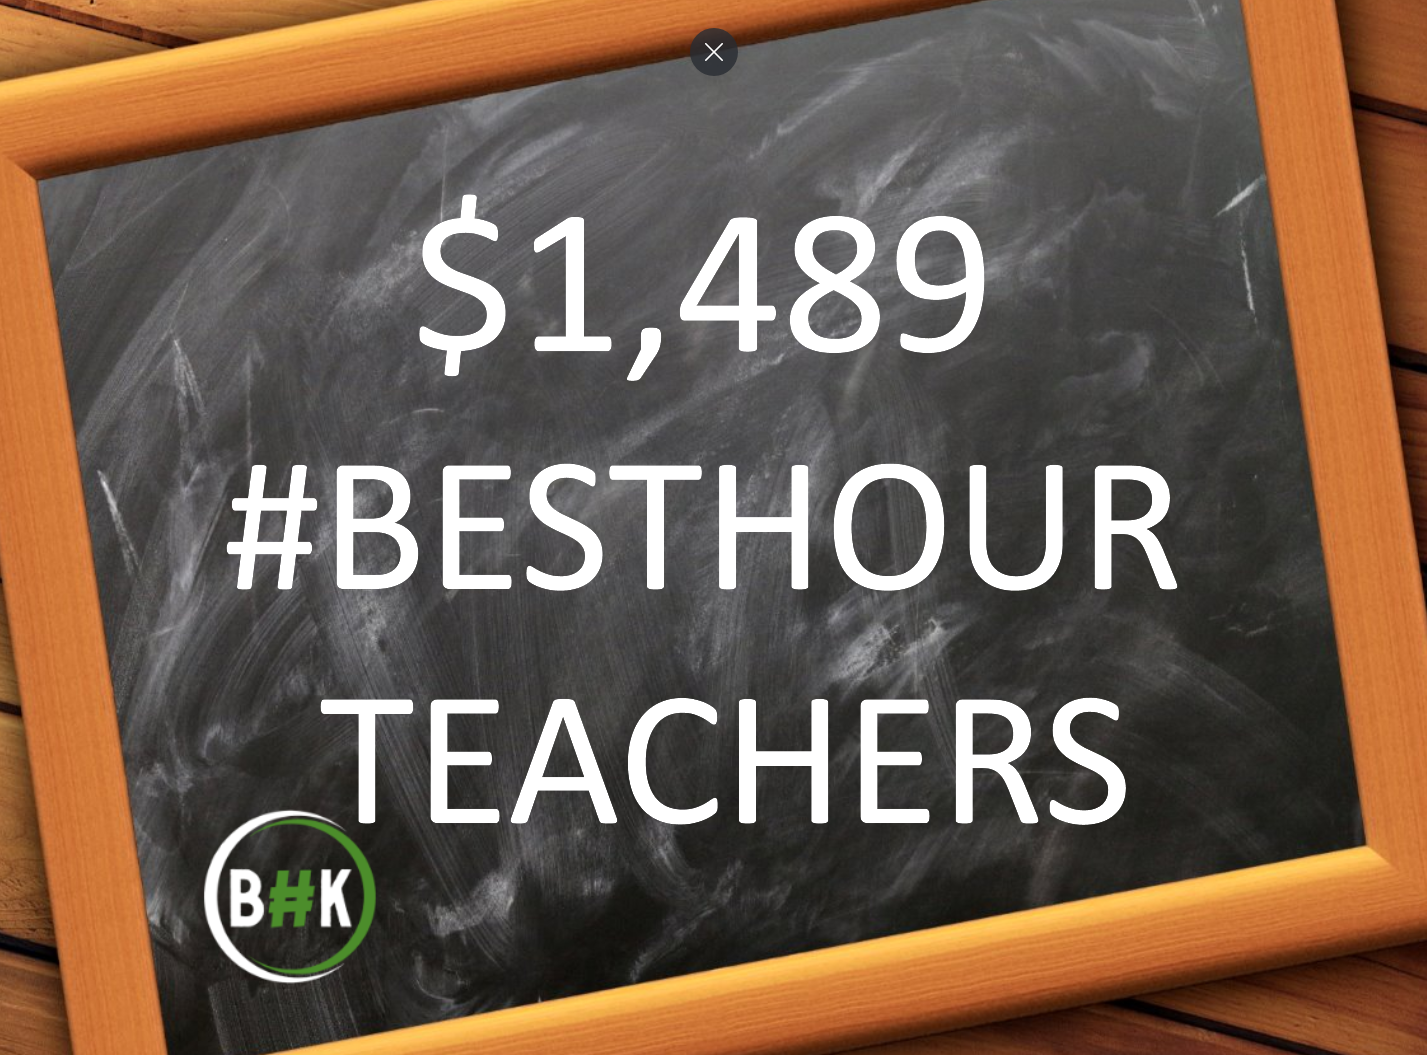 You are currently viewing Local Teachers receive $1,489 for classroom supplies